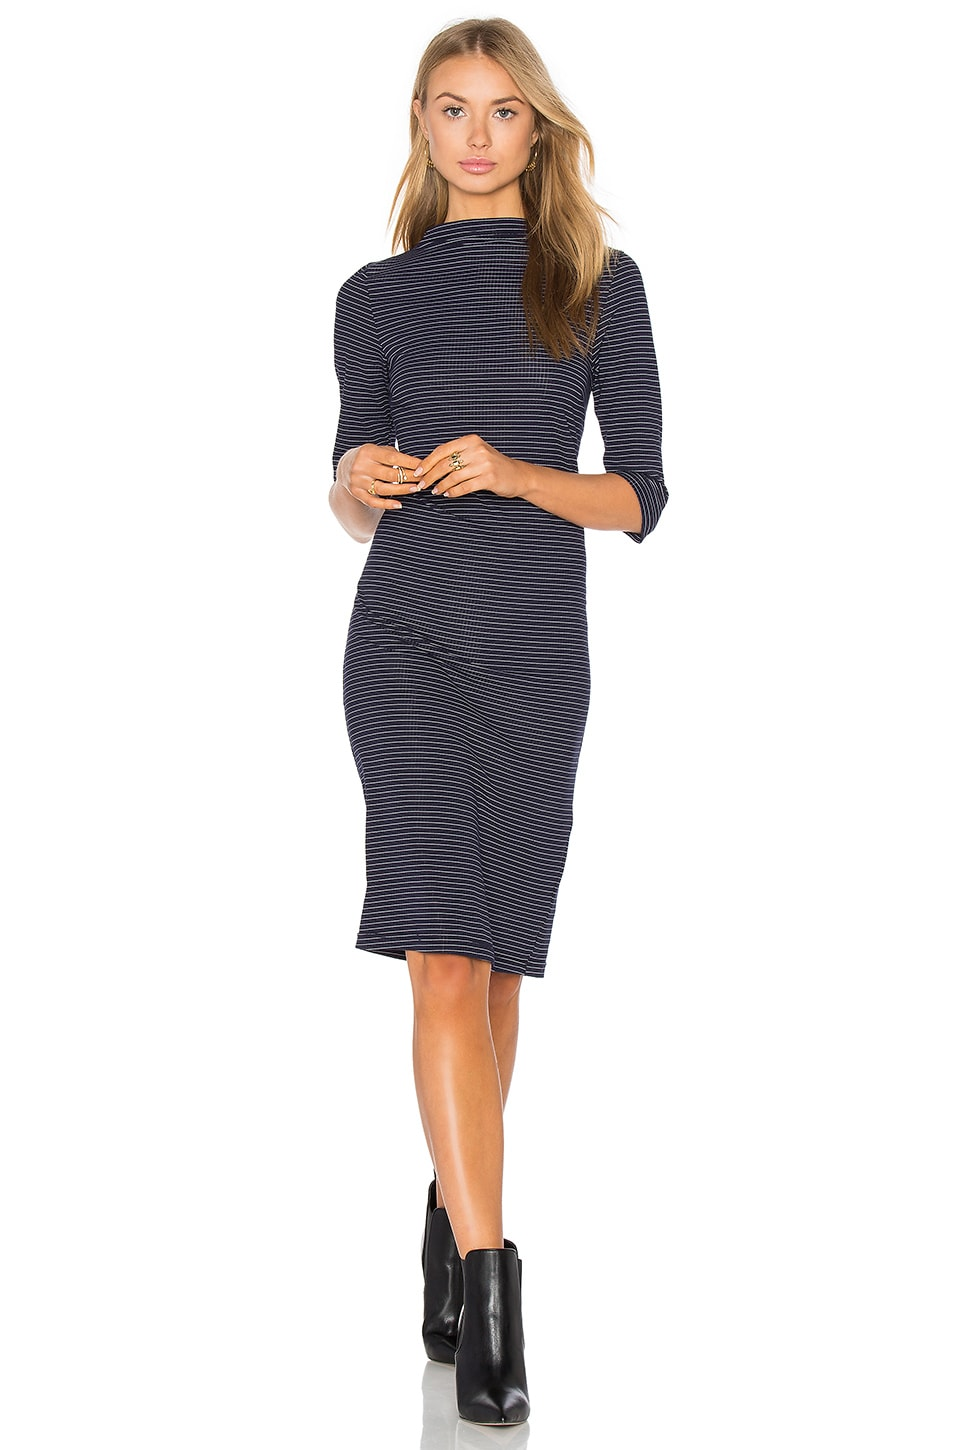 Webster Funnel Neck Dress by PFEIFFER